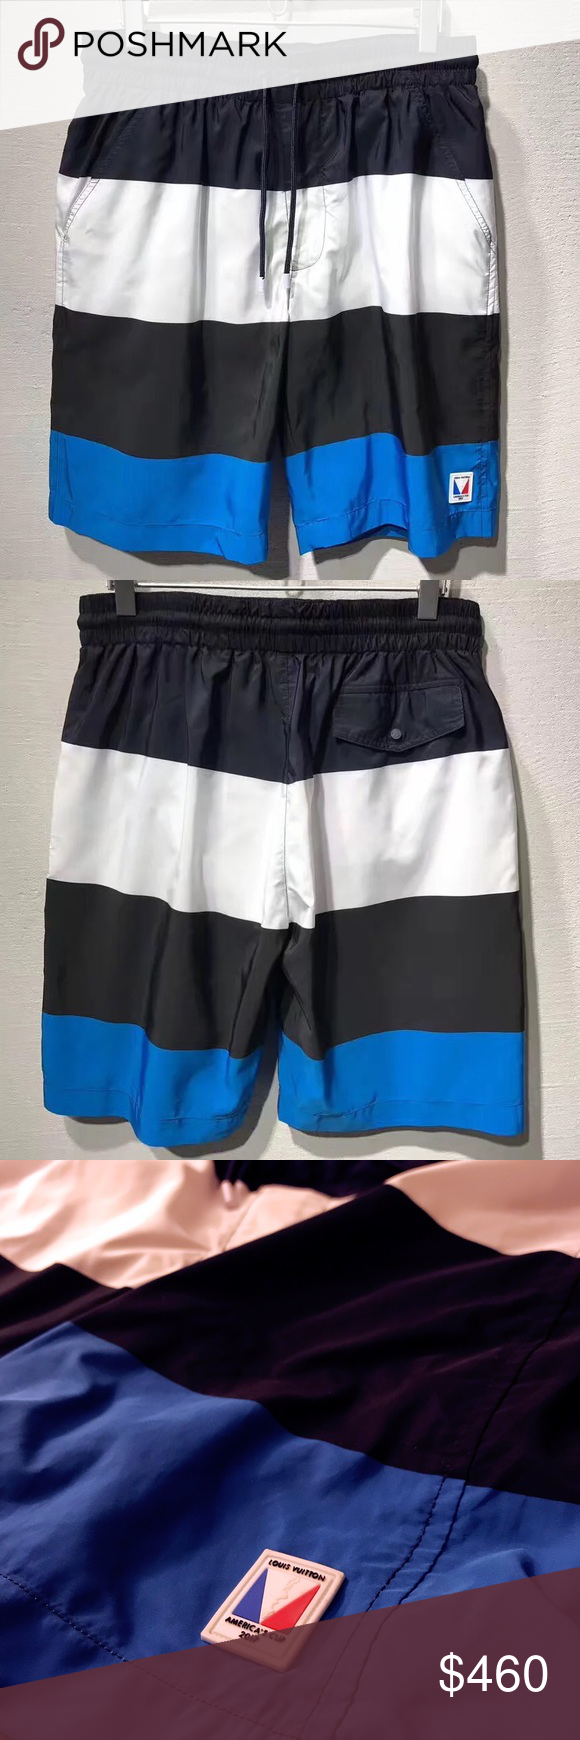 c1bfcd9dac Louis Vuitton America's Cup 2017 limited shorts From the collection of LOUIS  VUITTON 2017 America's cup limited edition items. Used for one summer.